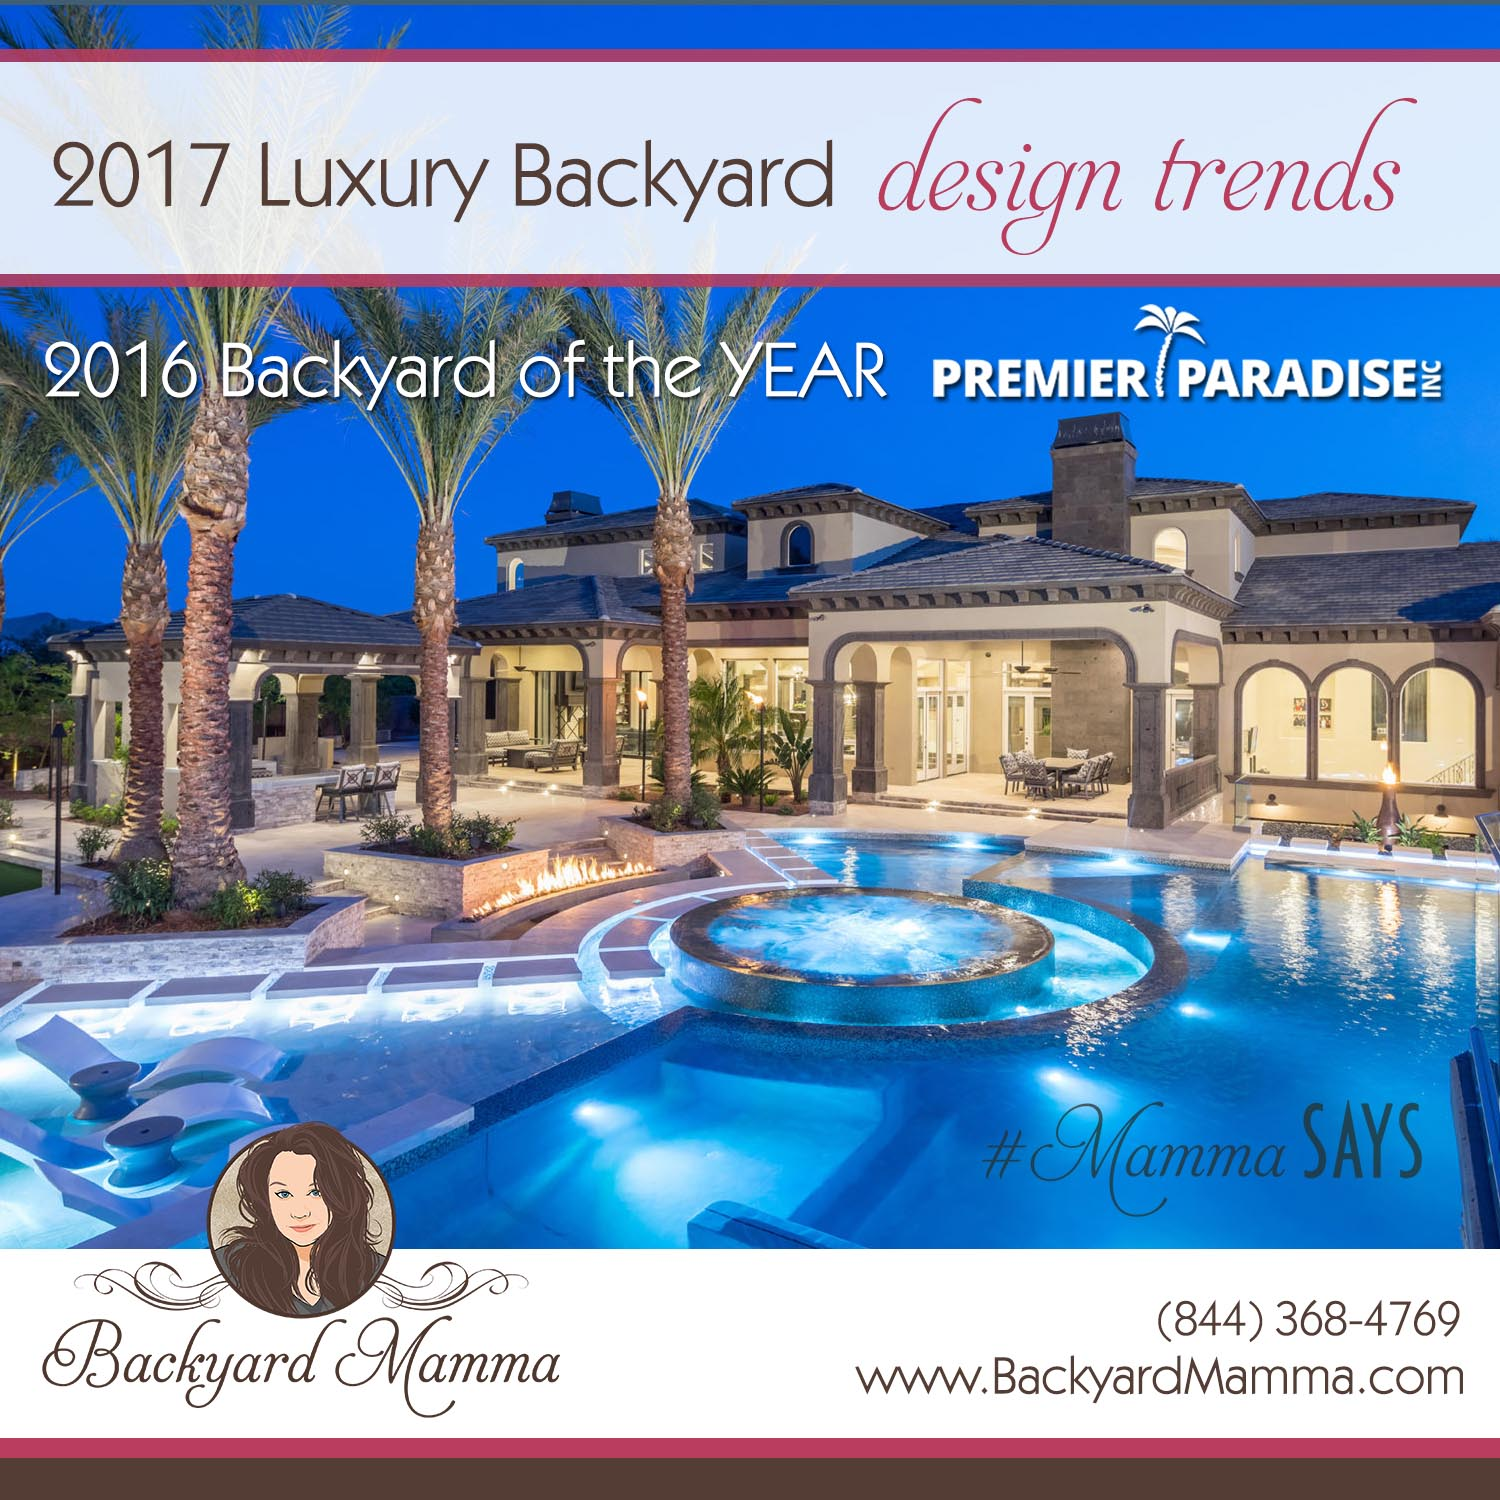 Backyard mamma luxury outdoor living design ideas for for Pool design trends 2017